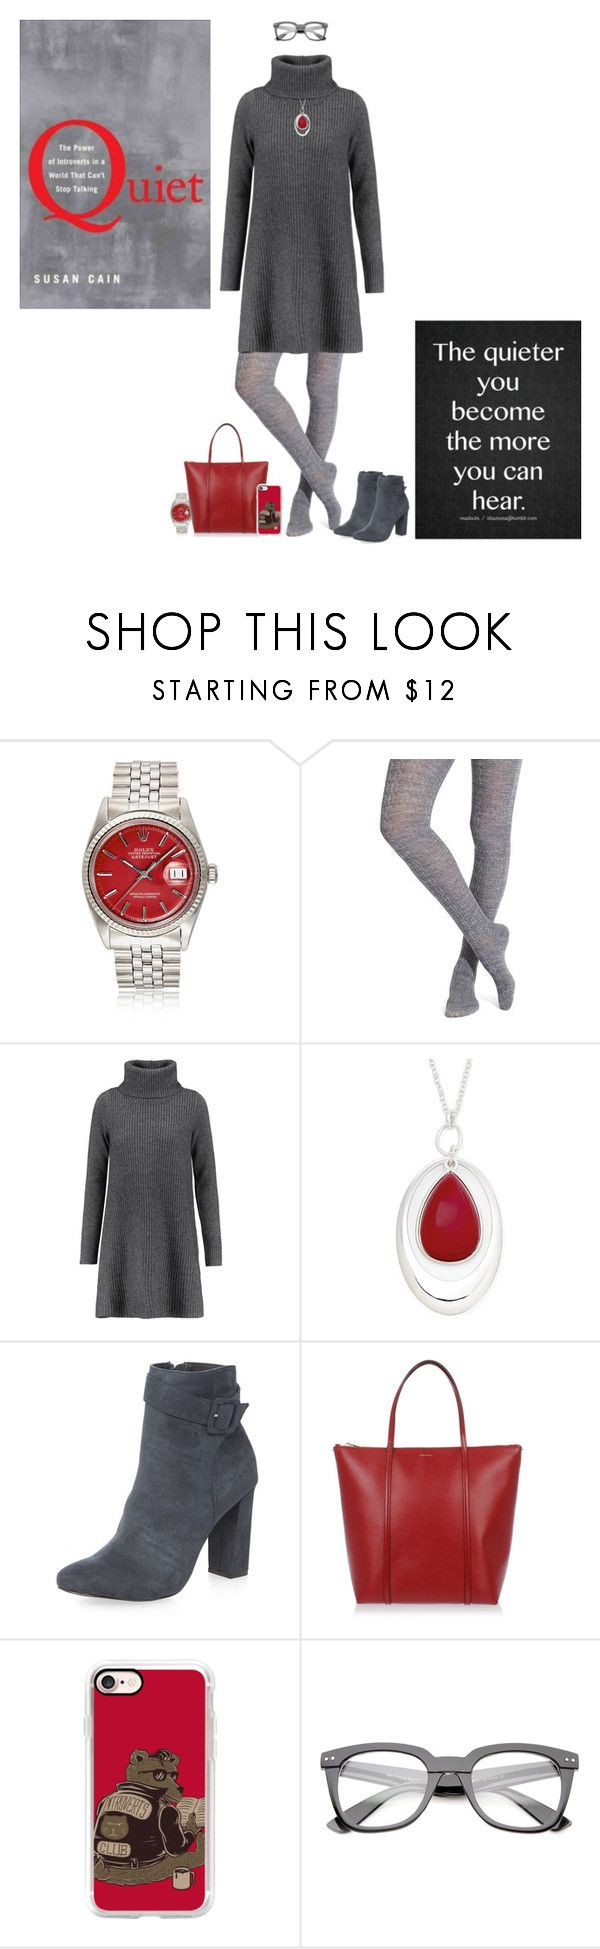 """""""Q is for Quiet by Susan Cain"""" by tracy-gowen ❤ liked on Polyvore featuring Smartwool, Madeleine Thompson, Liz Claiborne, Dorothy Perkins, Dolce&Gabbana and Casetify"""